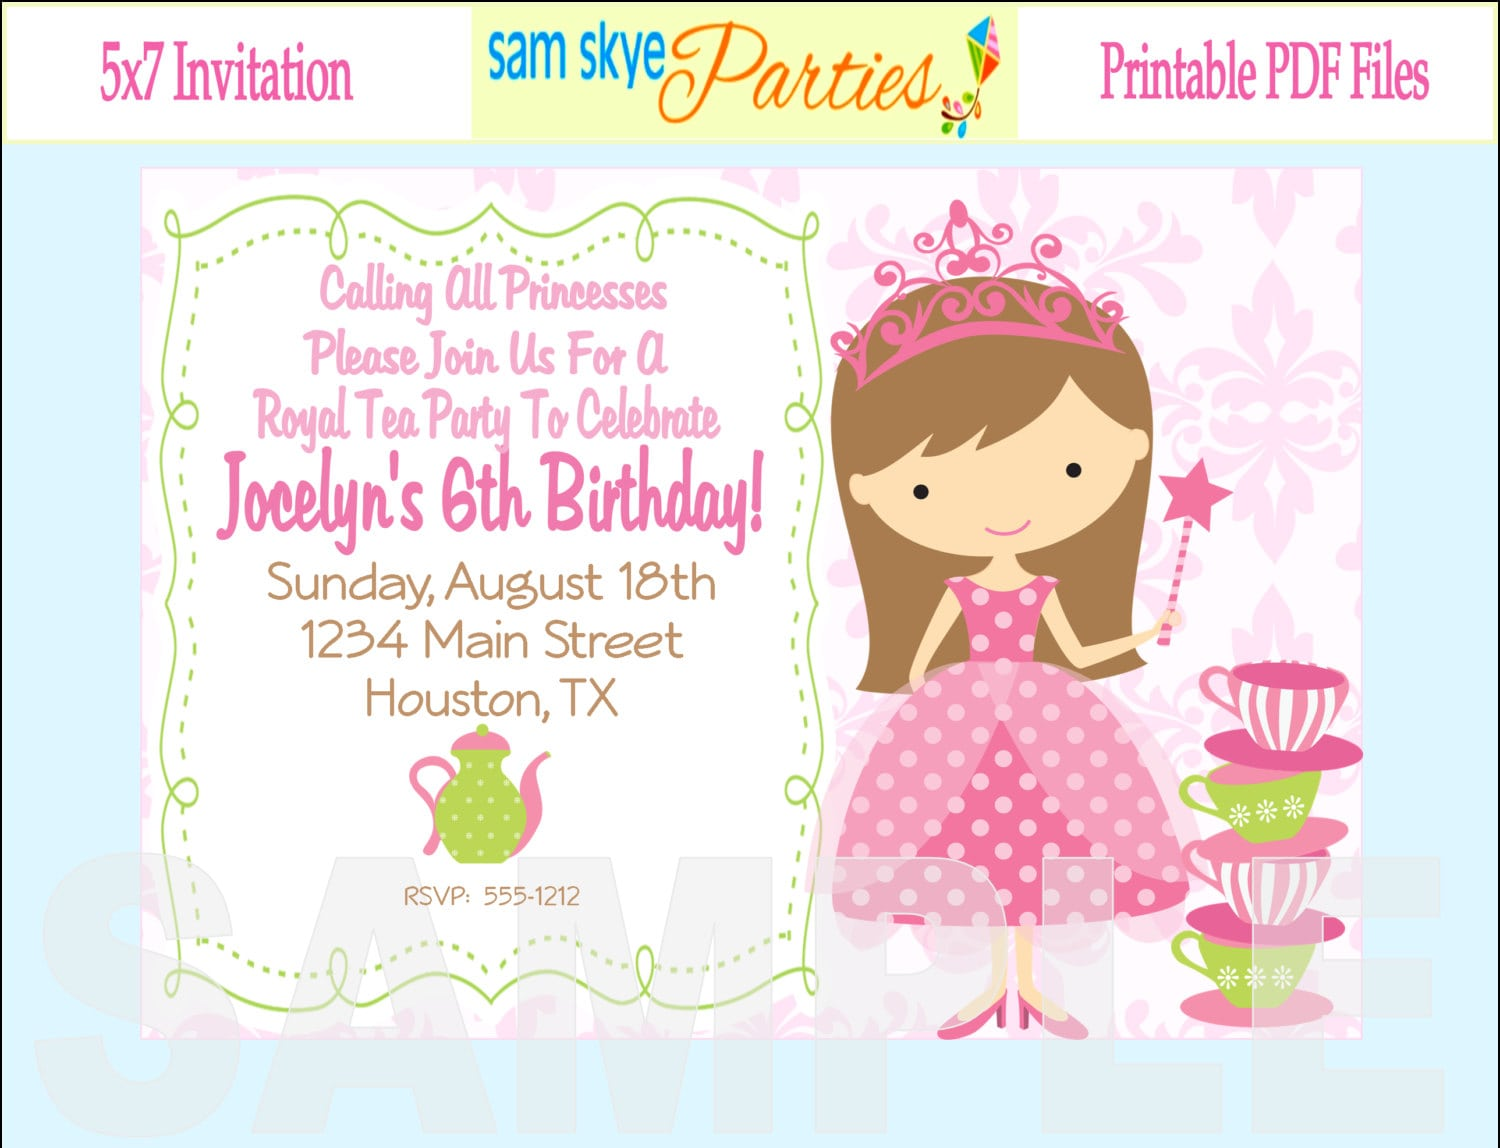 Avon Party Invitations Templates free printable brochure admission ...